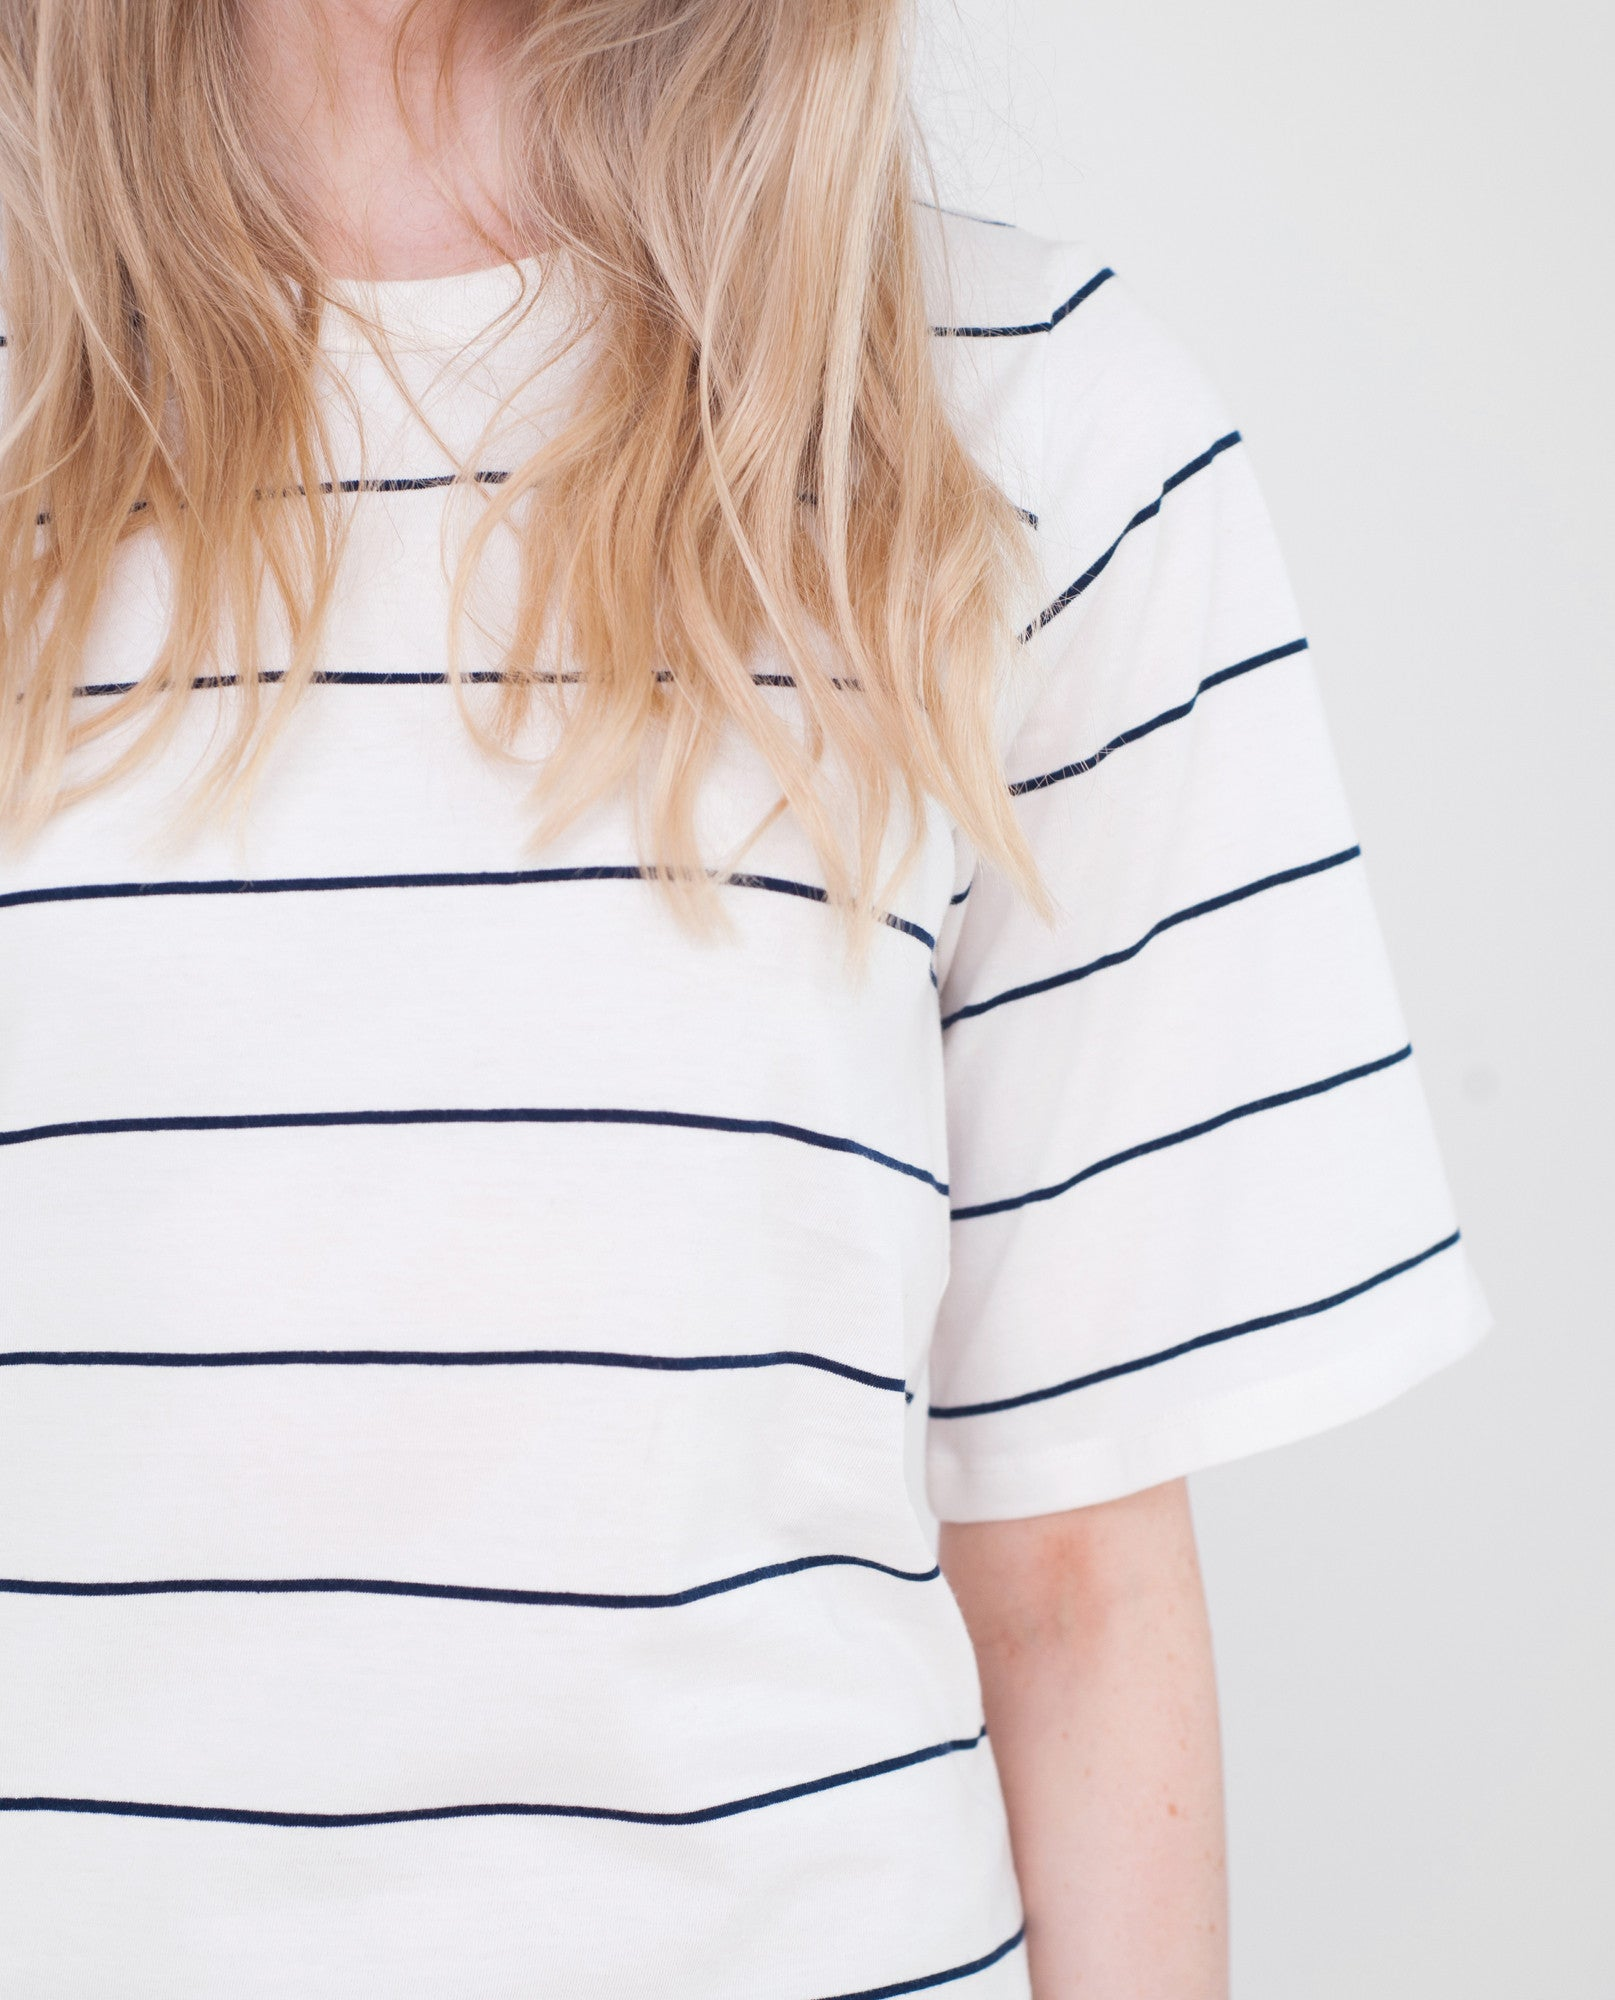 SAVANNAH Organic Cotton Tshirt In Off White And Navy